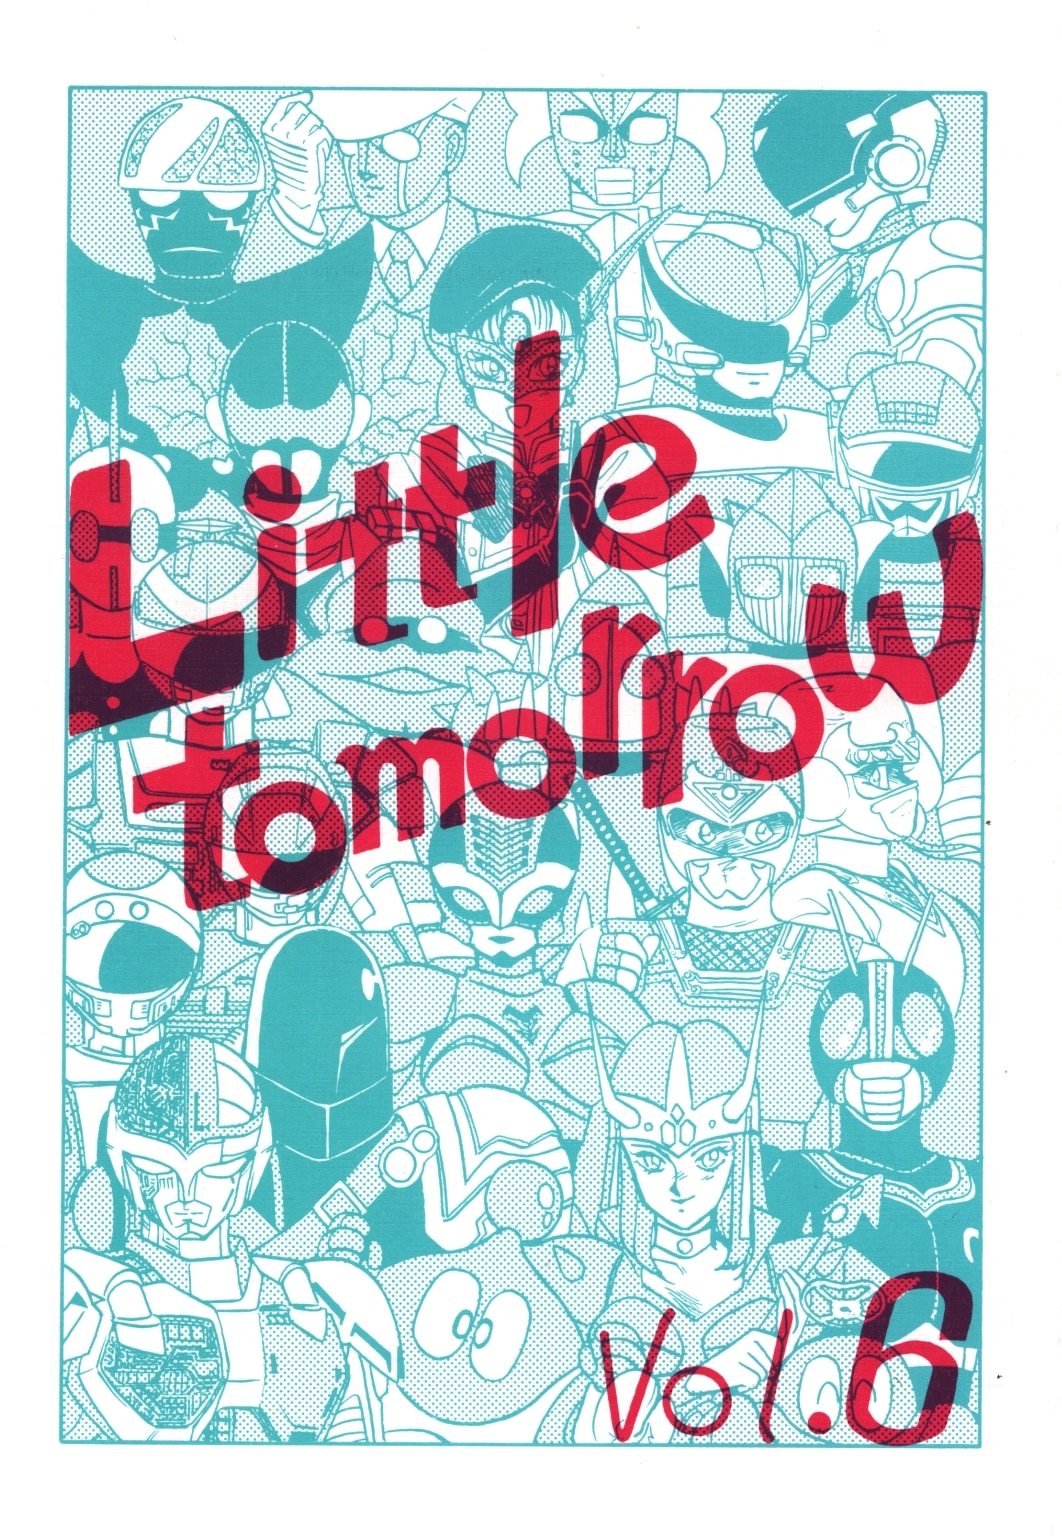 [Hentai] Doujinshi - 「よろず」 Little tomorrow Vol.6 / BIBLE